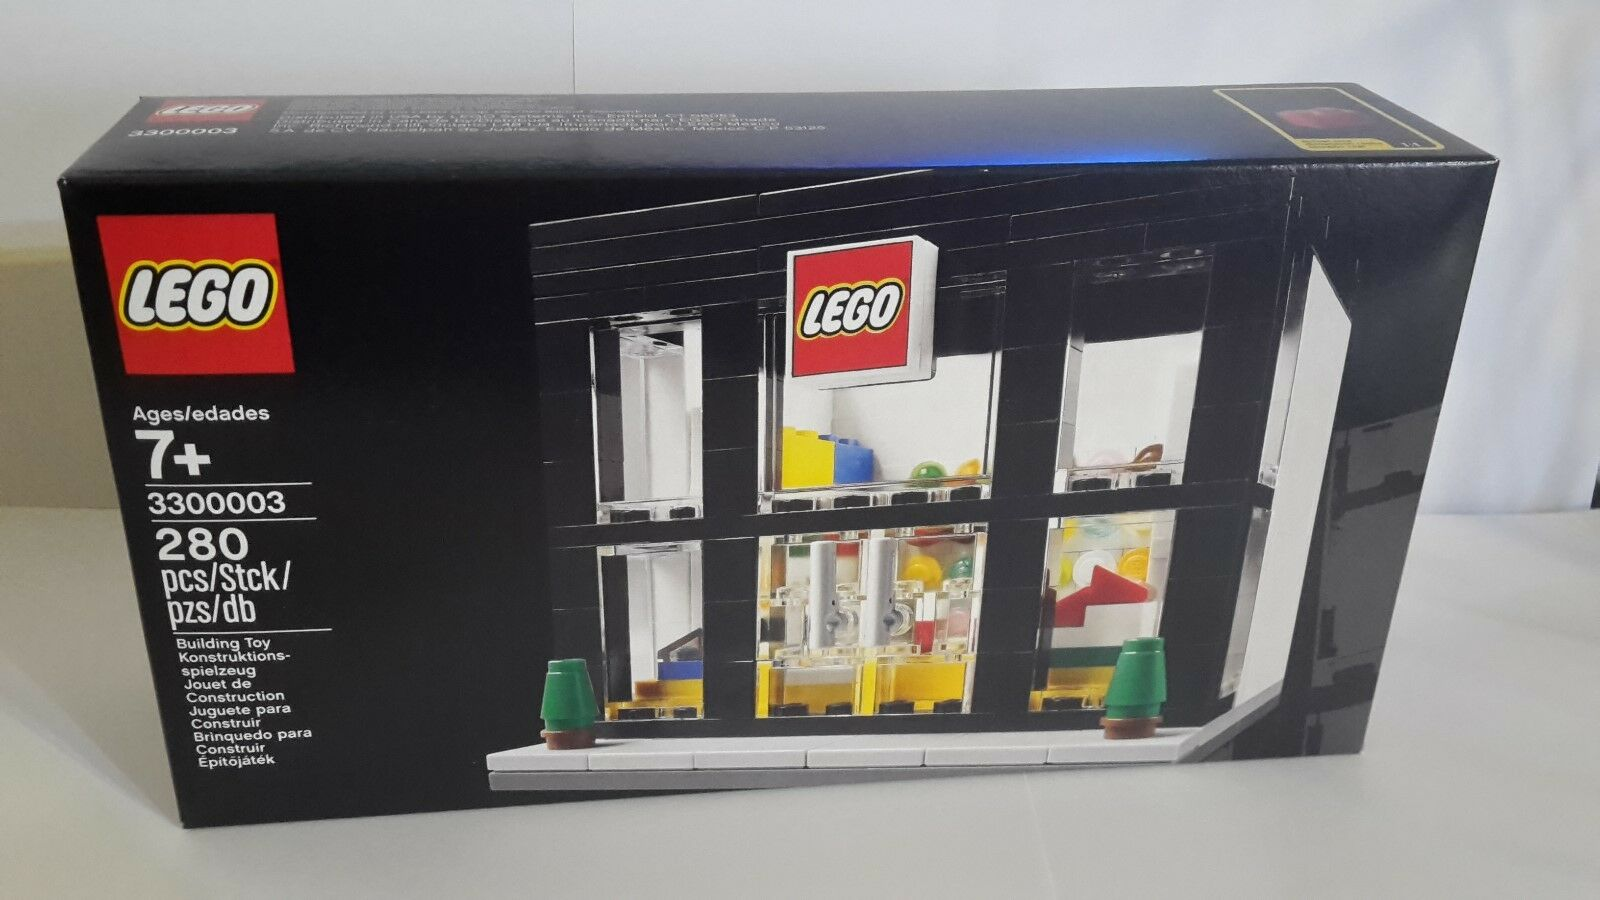 LEGO® Exclusive Creator Lego Store Brand Retail Store 3300003 NEU / OVP